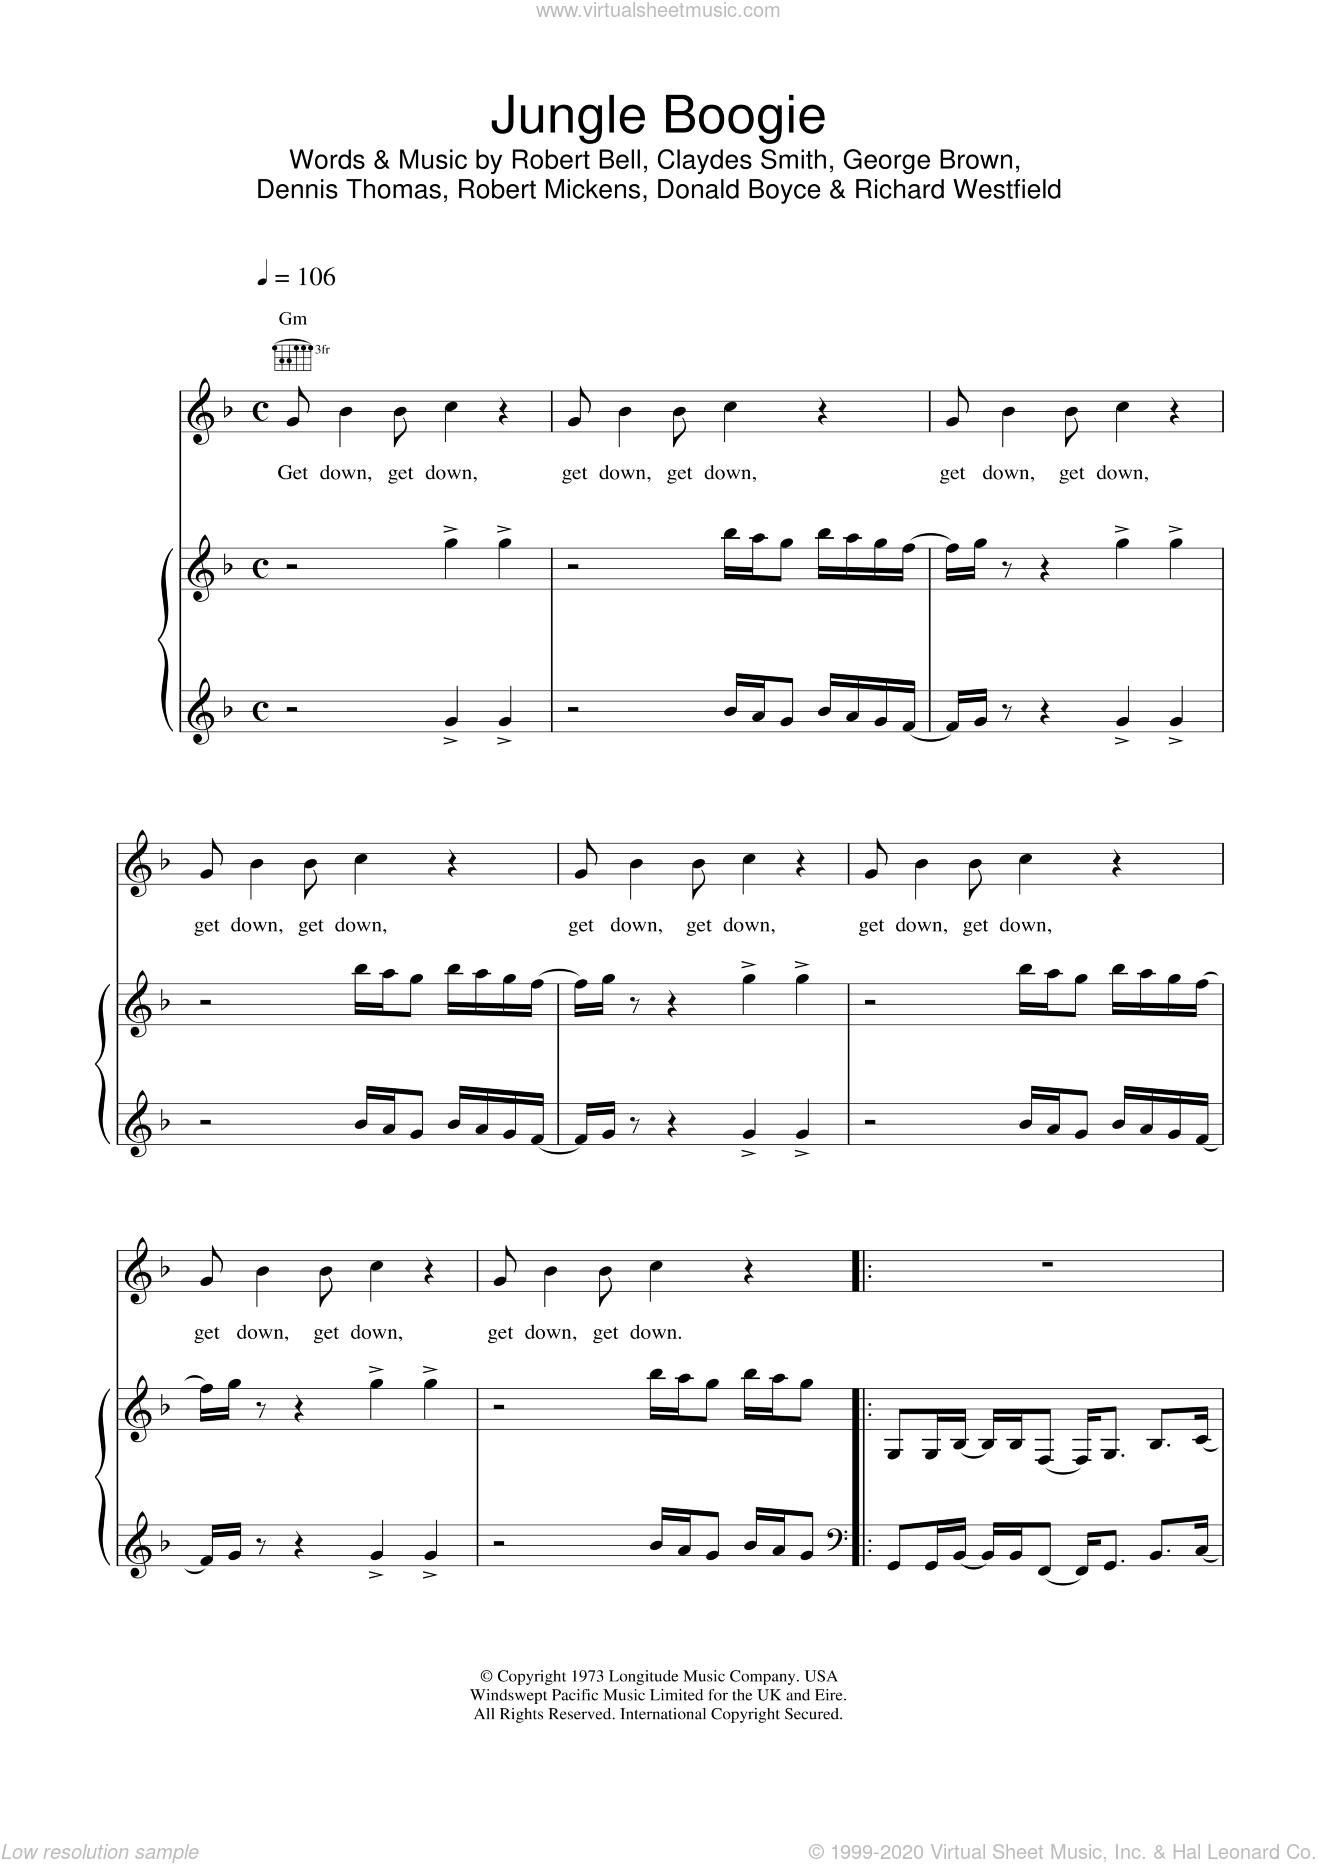 Jungle Boogie sheet music for voice, piano or guitar by Kool And The Gang and Bell,Bell,Smith,Brown,Thomas,Mickens,Boyce&Westfield, intermediate skill level